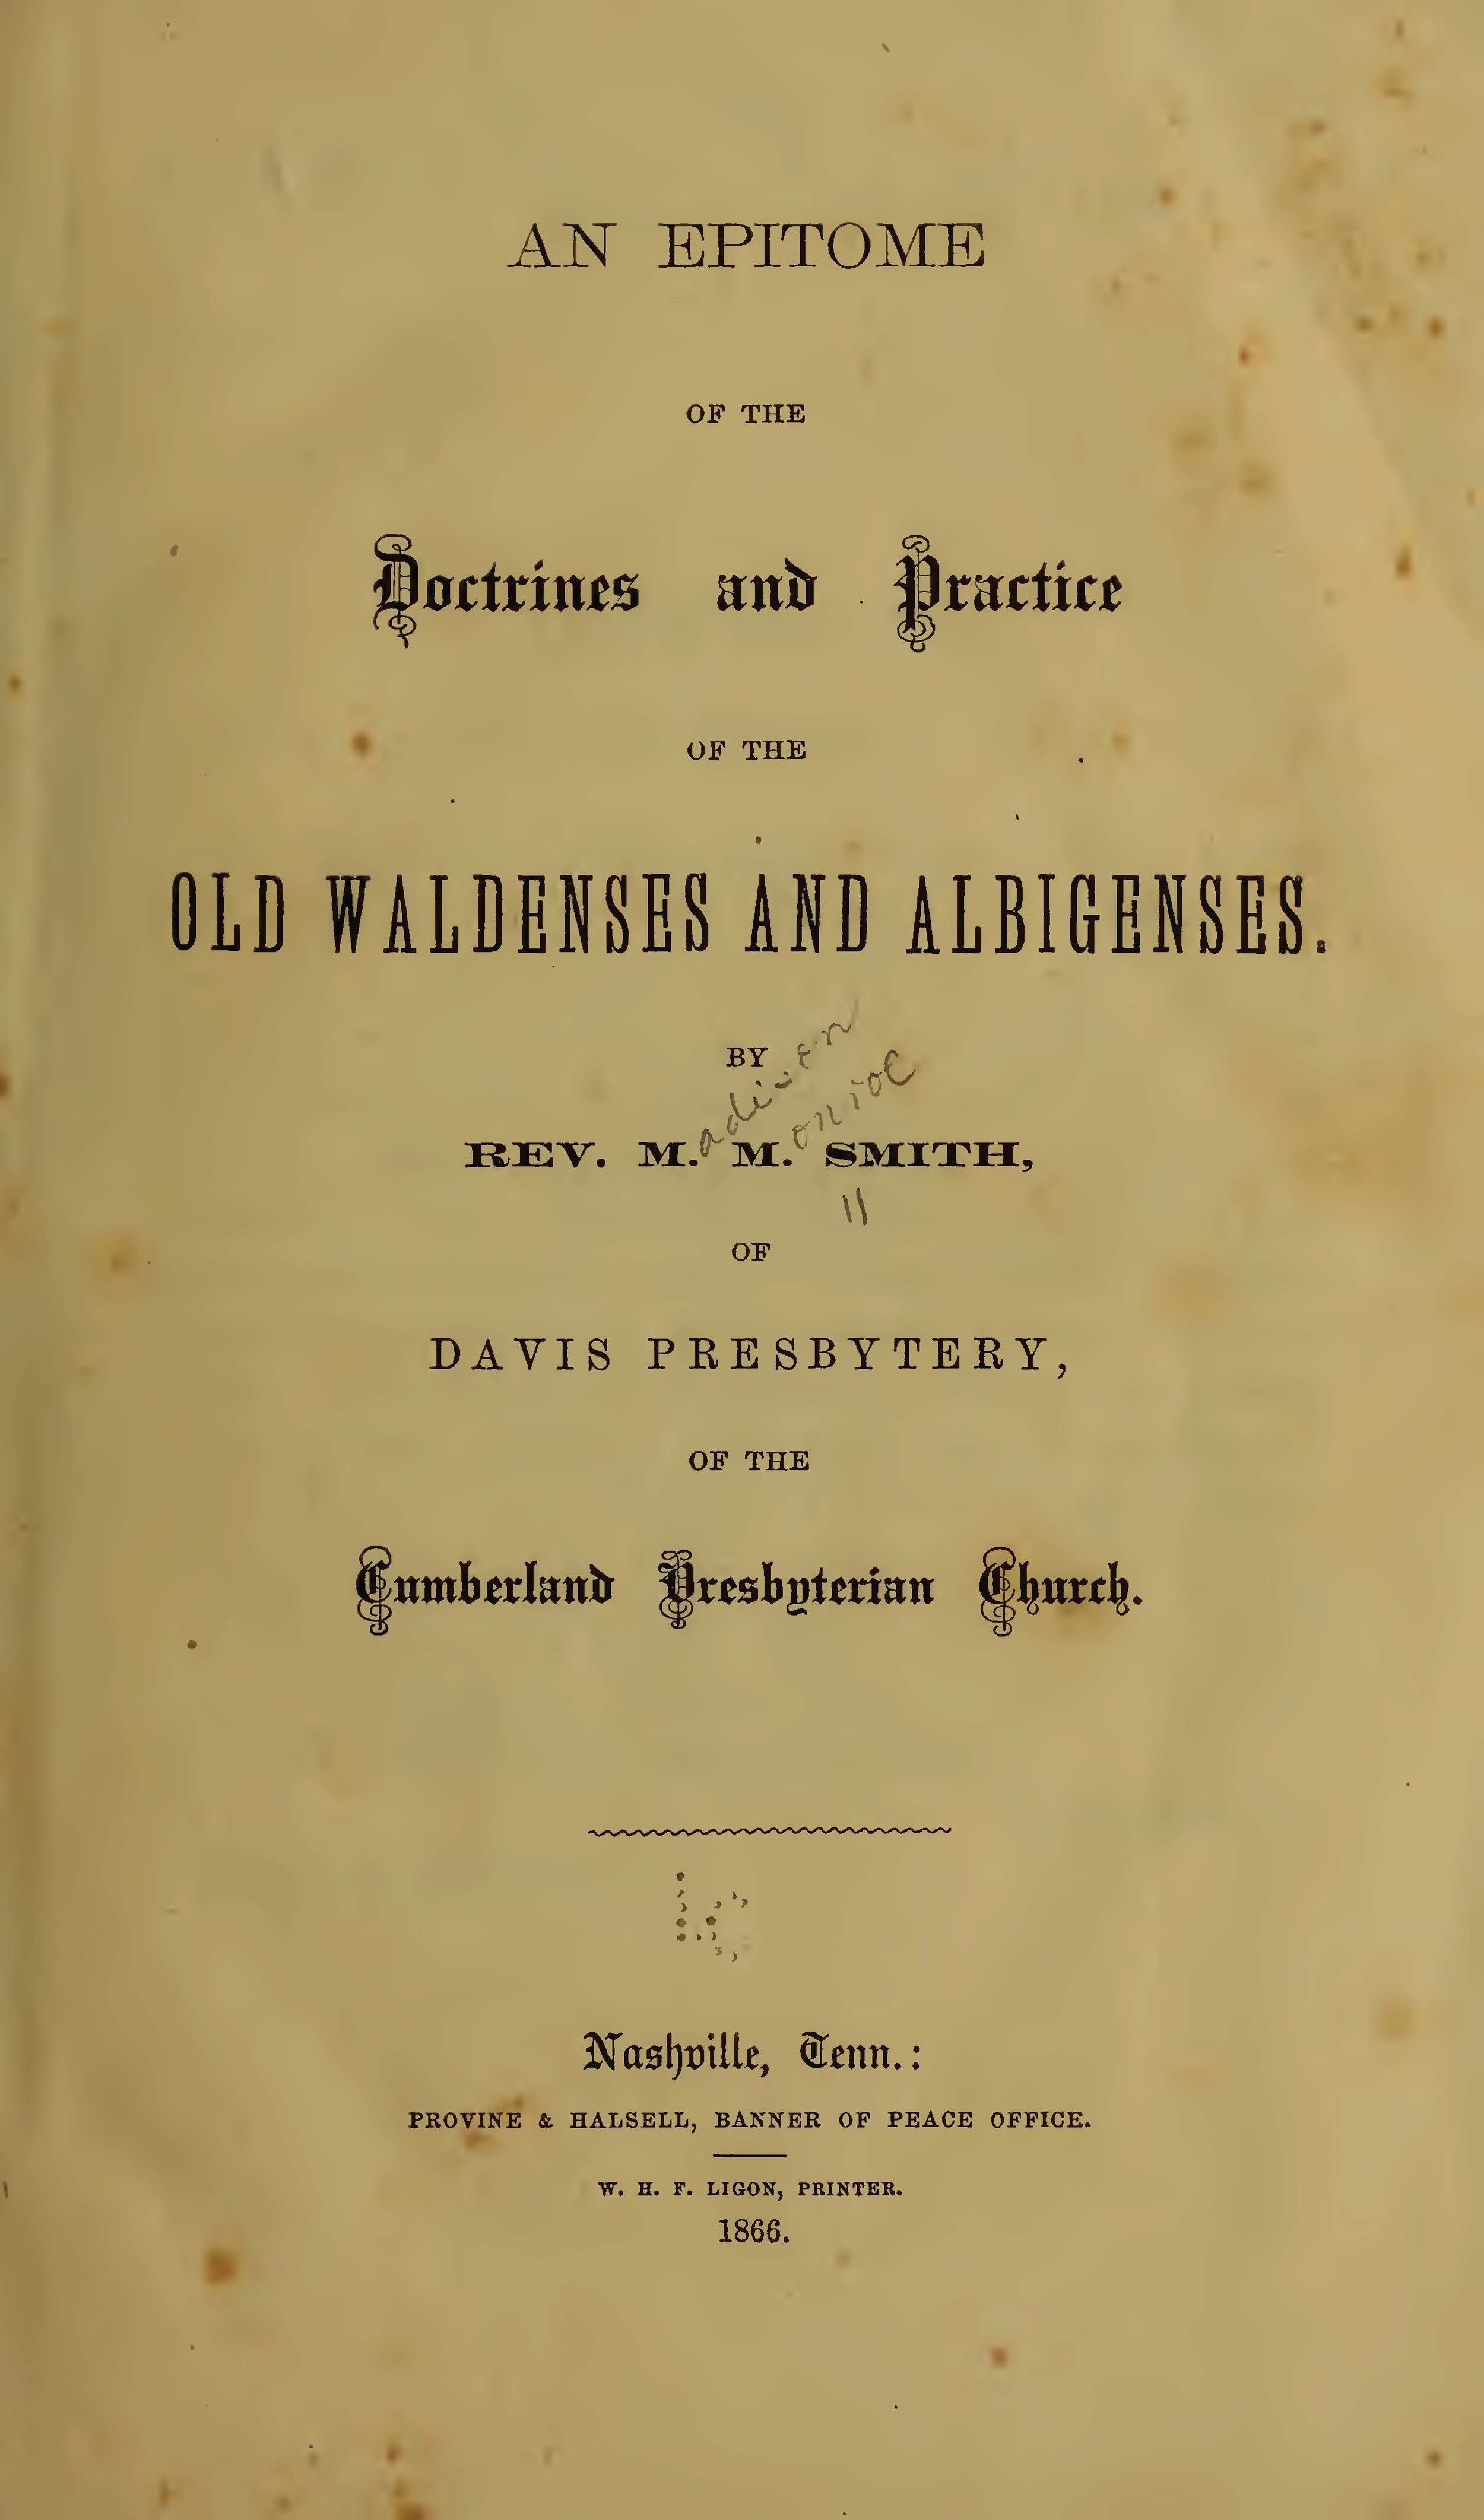 Smith, Madison Monroe, An Epitome of the Doctrine and Practice of the Old Waldenses and Albigenses Title Page.jpg